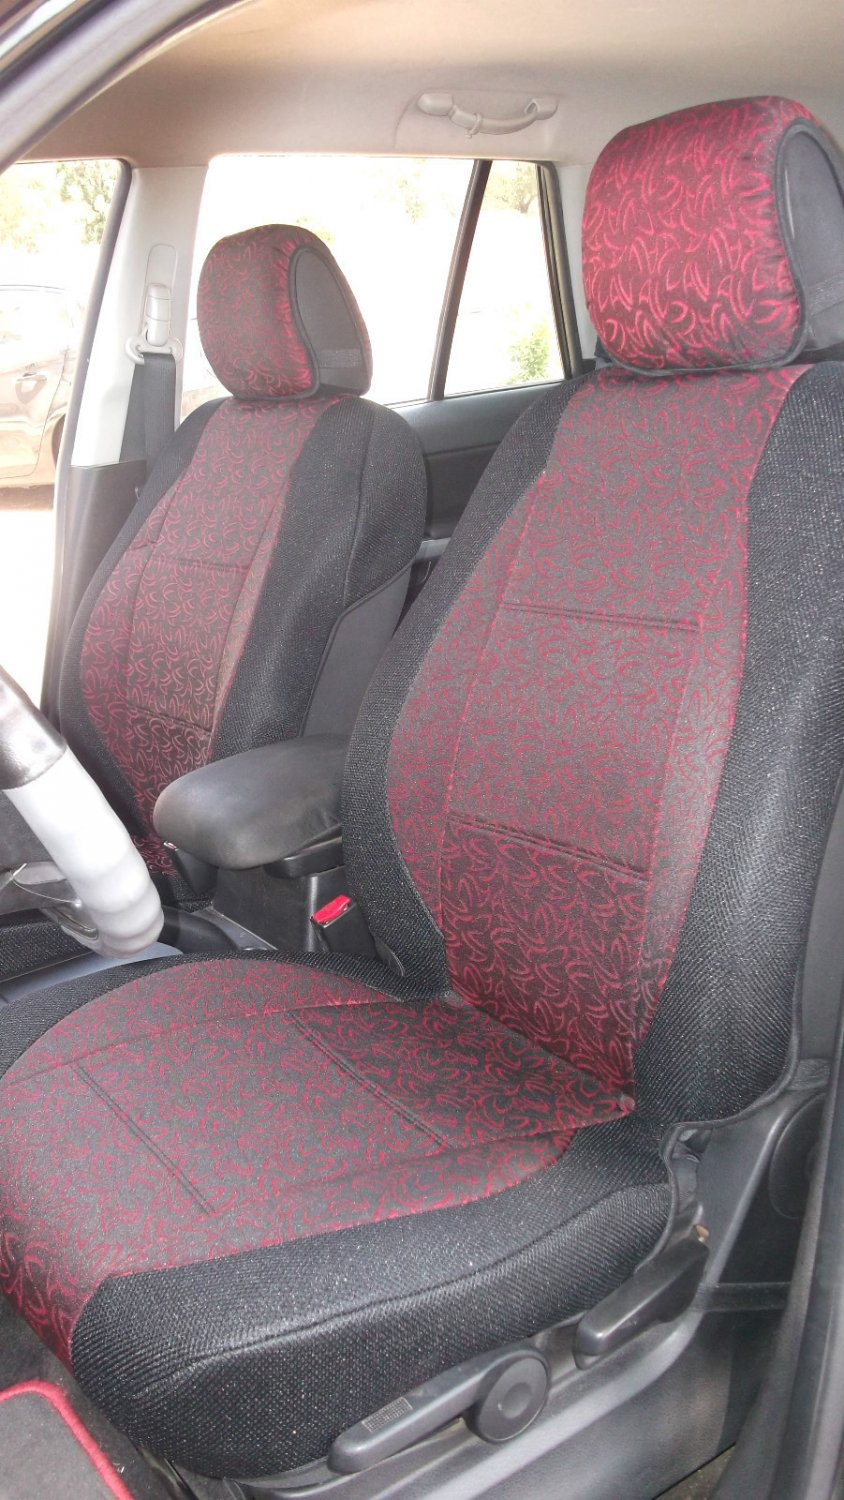 Two Front Fancy Cotton Red Black (K45) Car Seat Covers (Fits MERCEDES C-Class 1993-2000 W202)